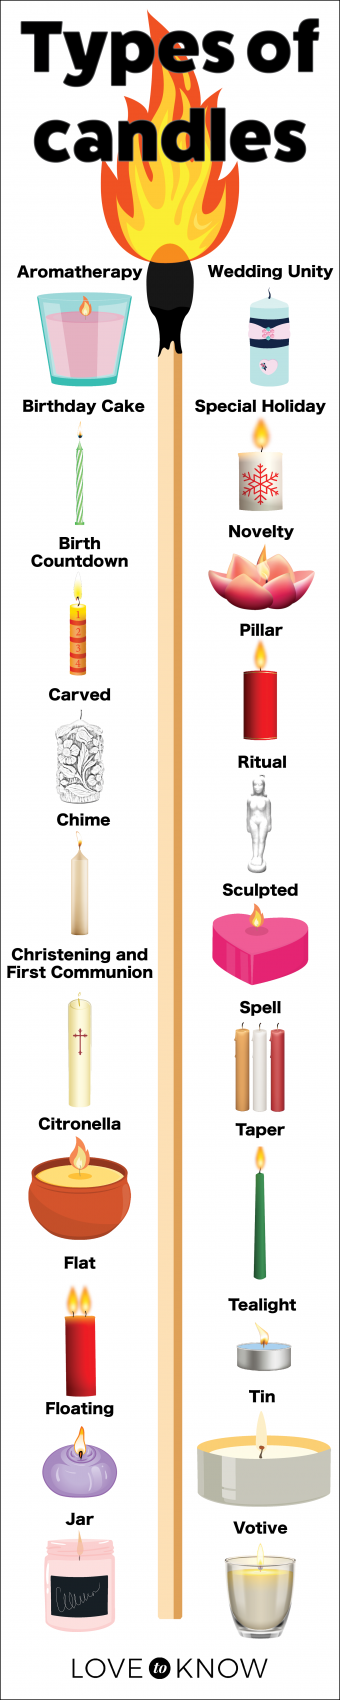 Types of candles Infographic